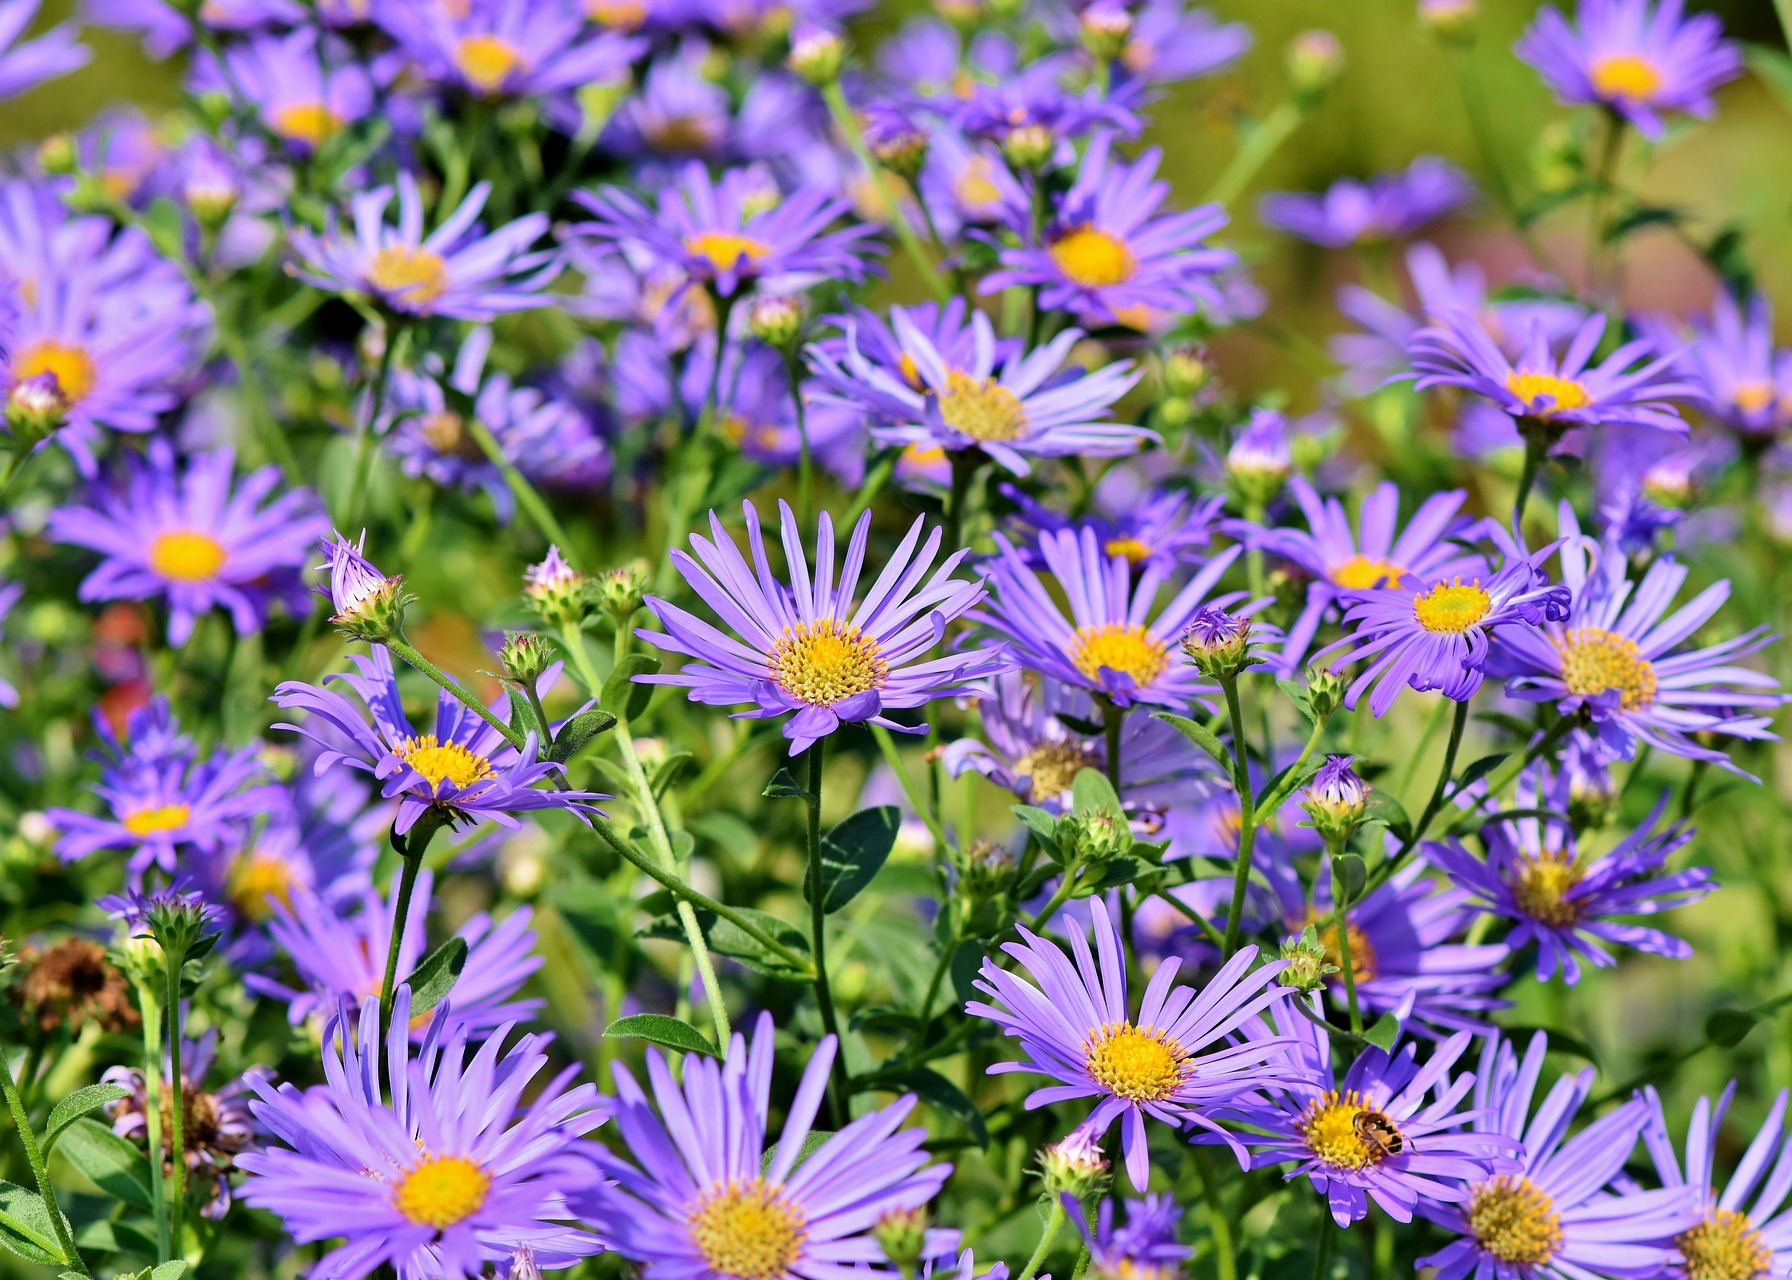 Asters: How to Plant, Grow, and Care for Aster Flowers | The Old ...